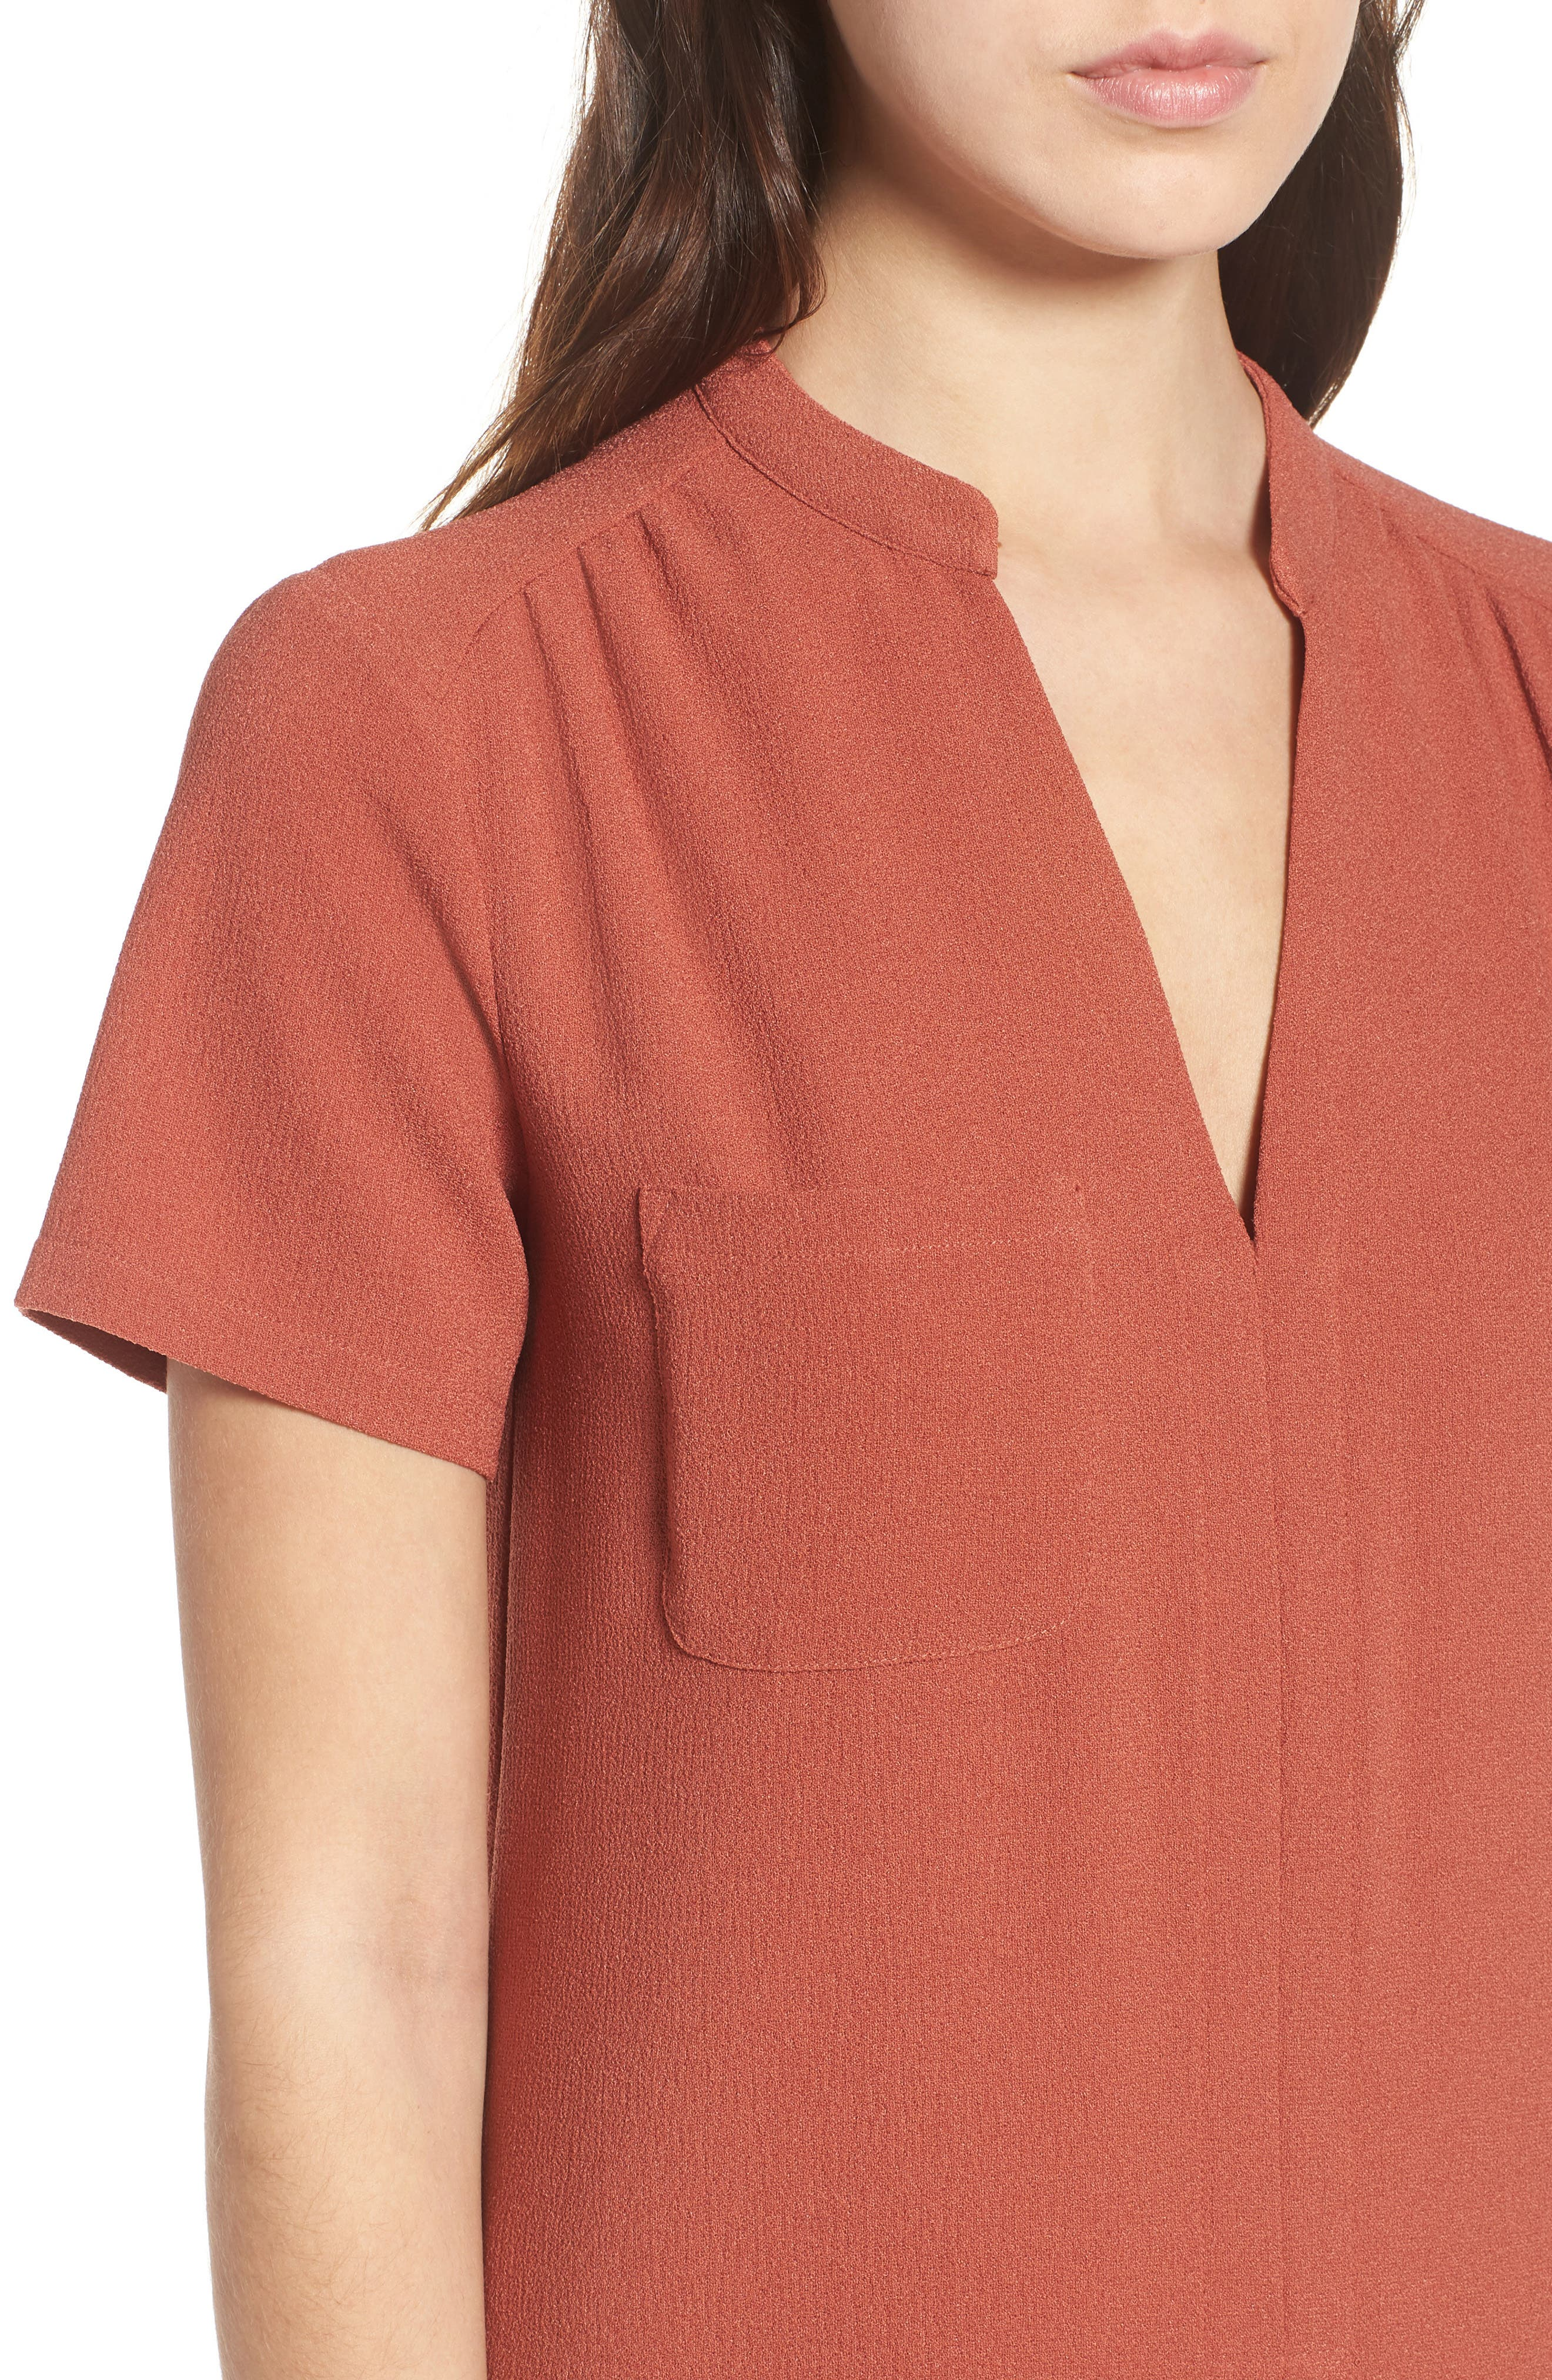 Hailey Crepe Dress,                             Alternate thumbnail 2, color,                             Rust Marsala